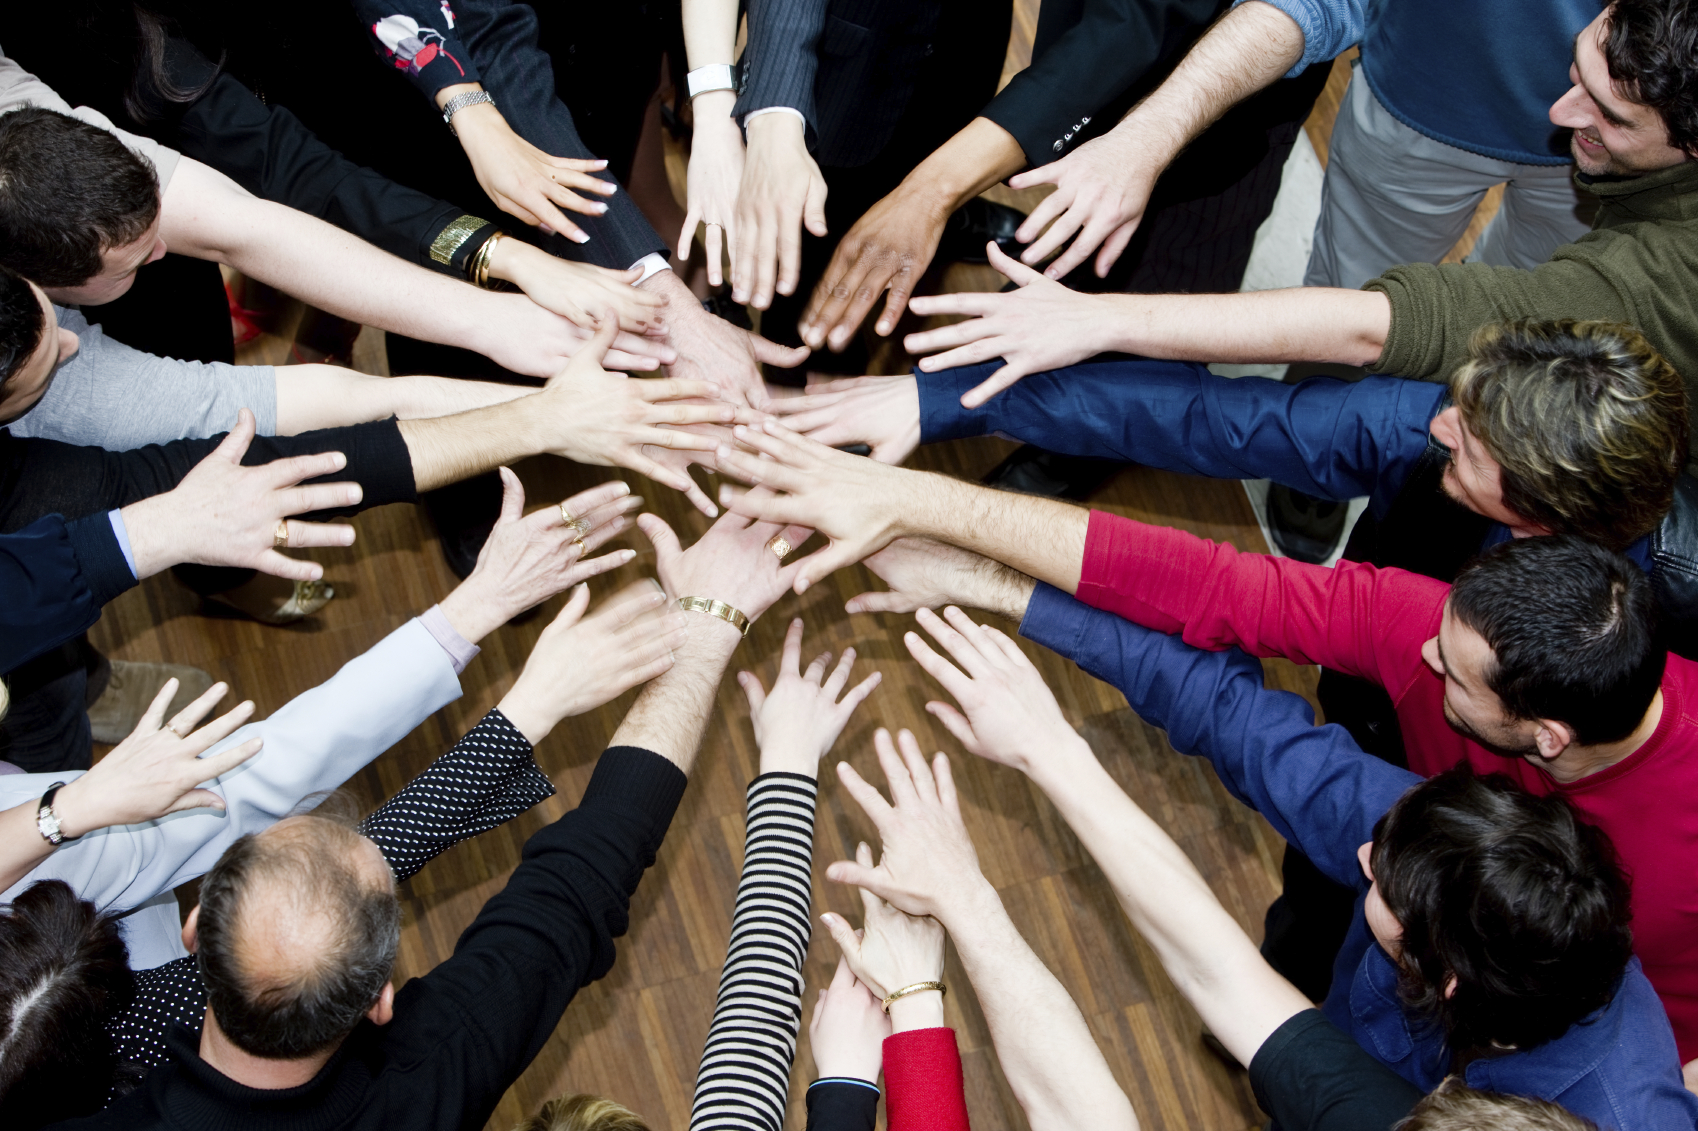 Employee ownership is on the rise